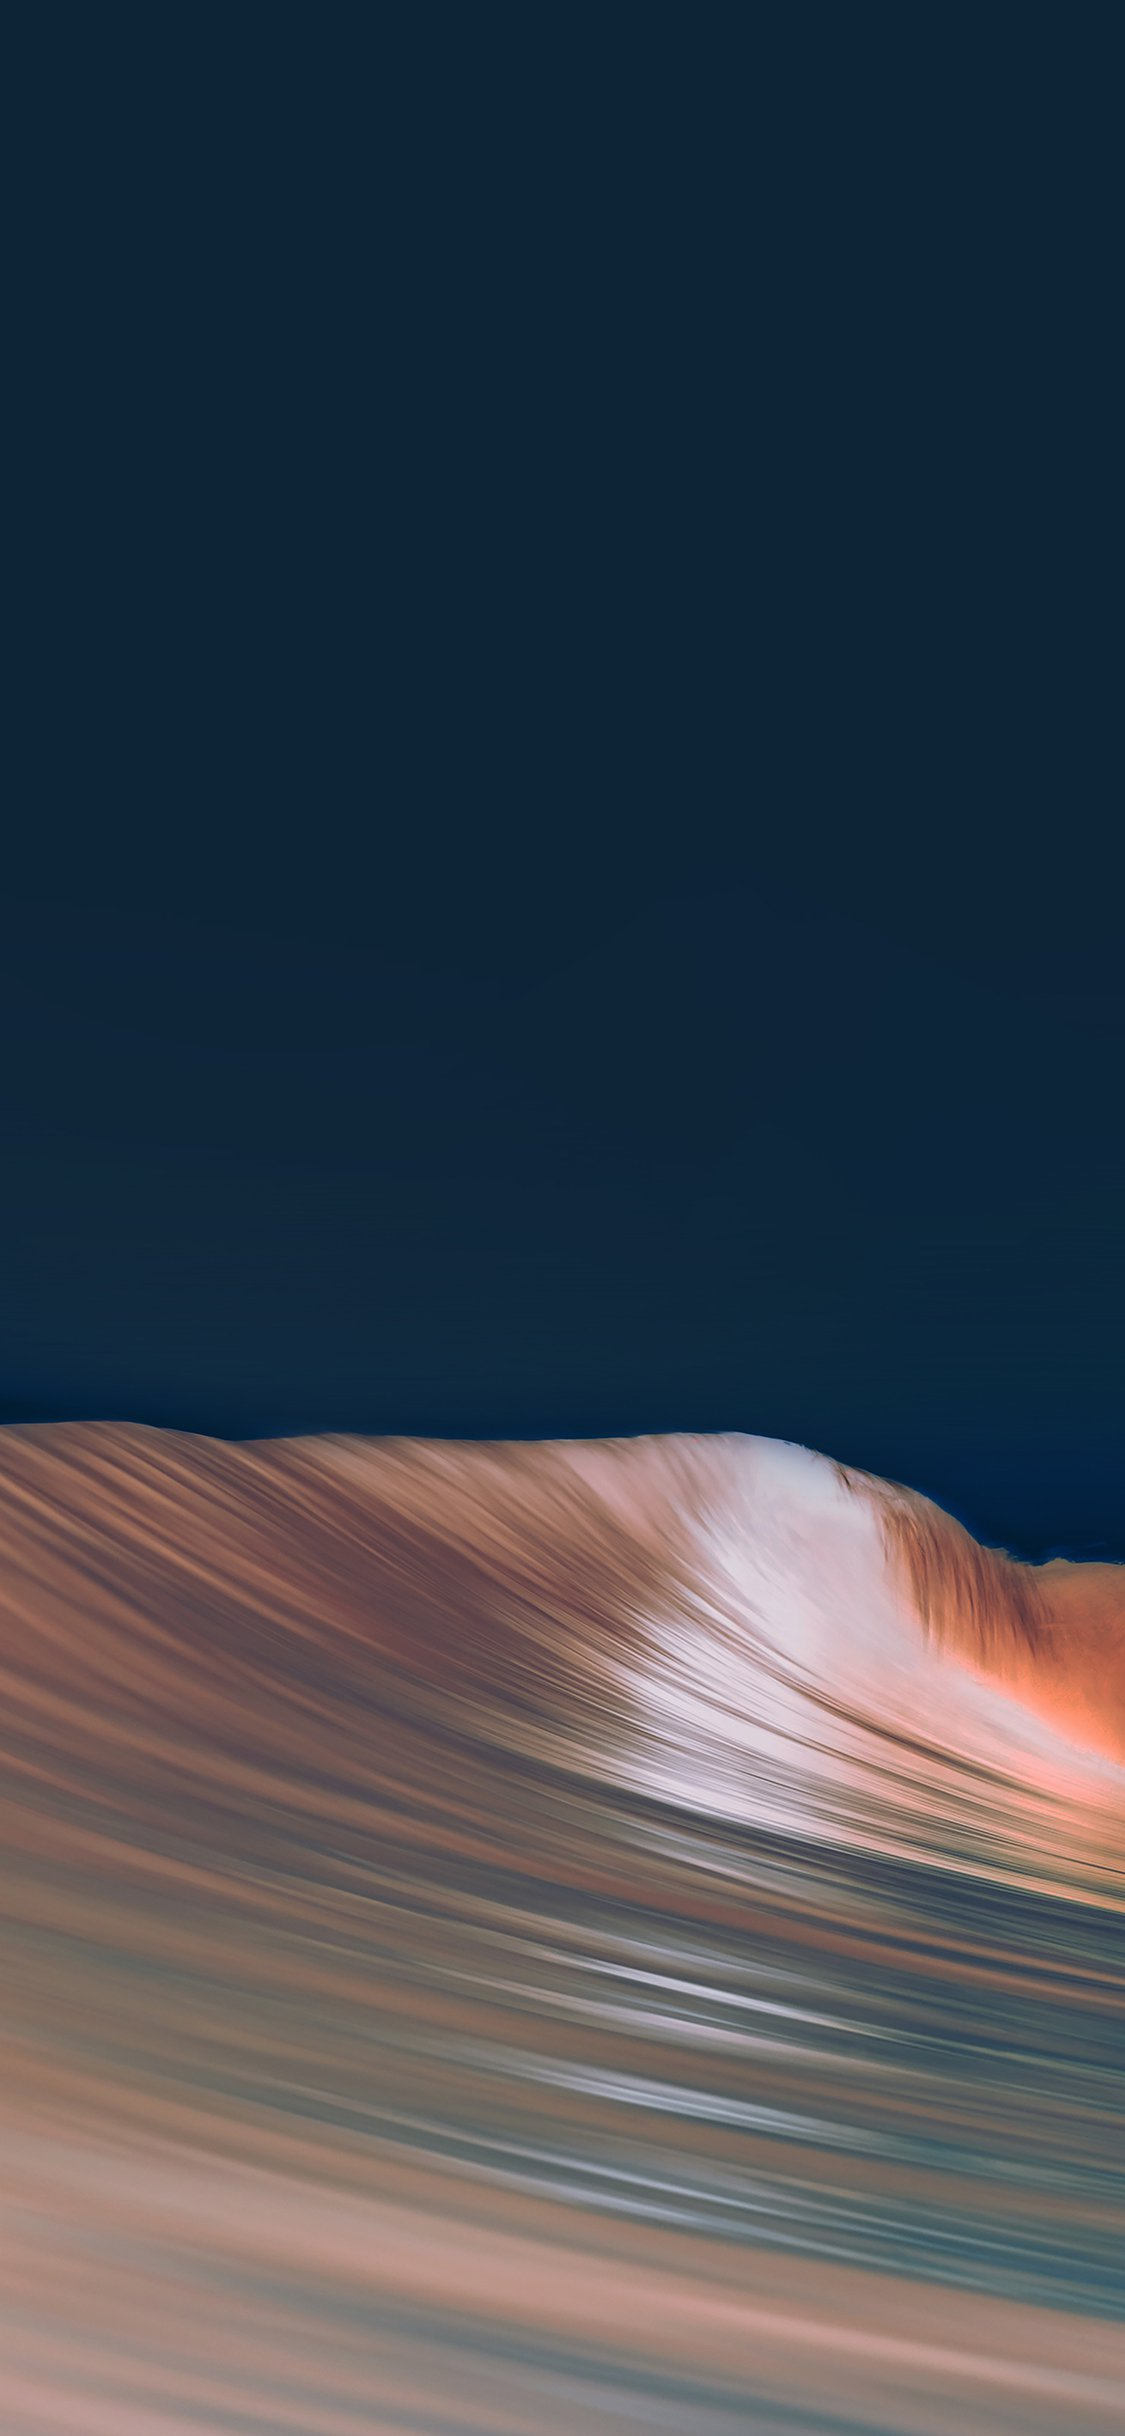 Rolling Wave Art Dark Simple Minimal Iphone X Wallpaper Download